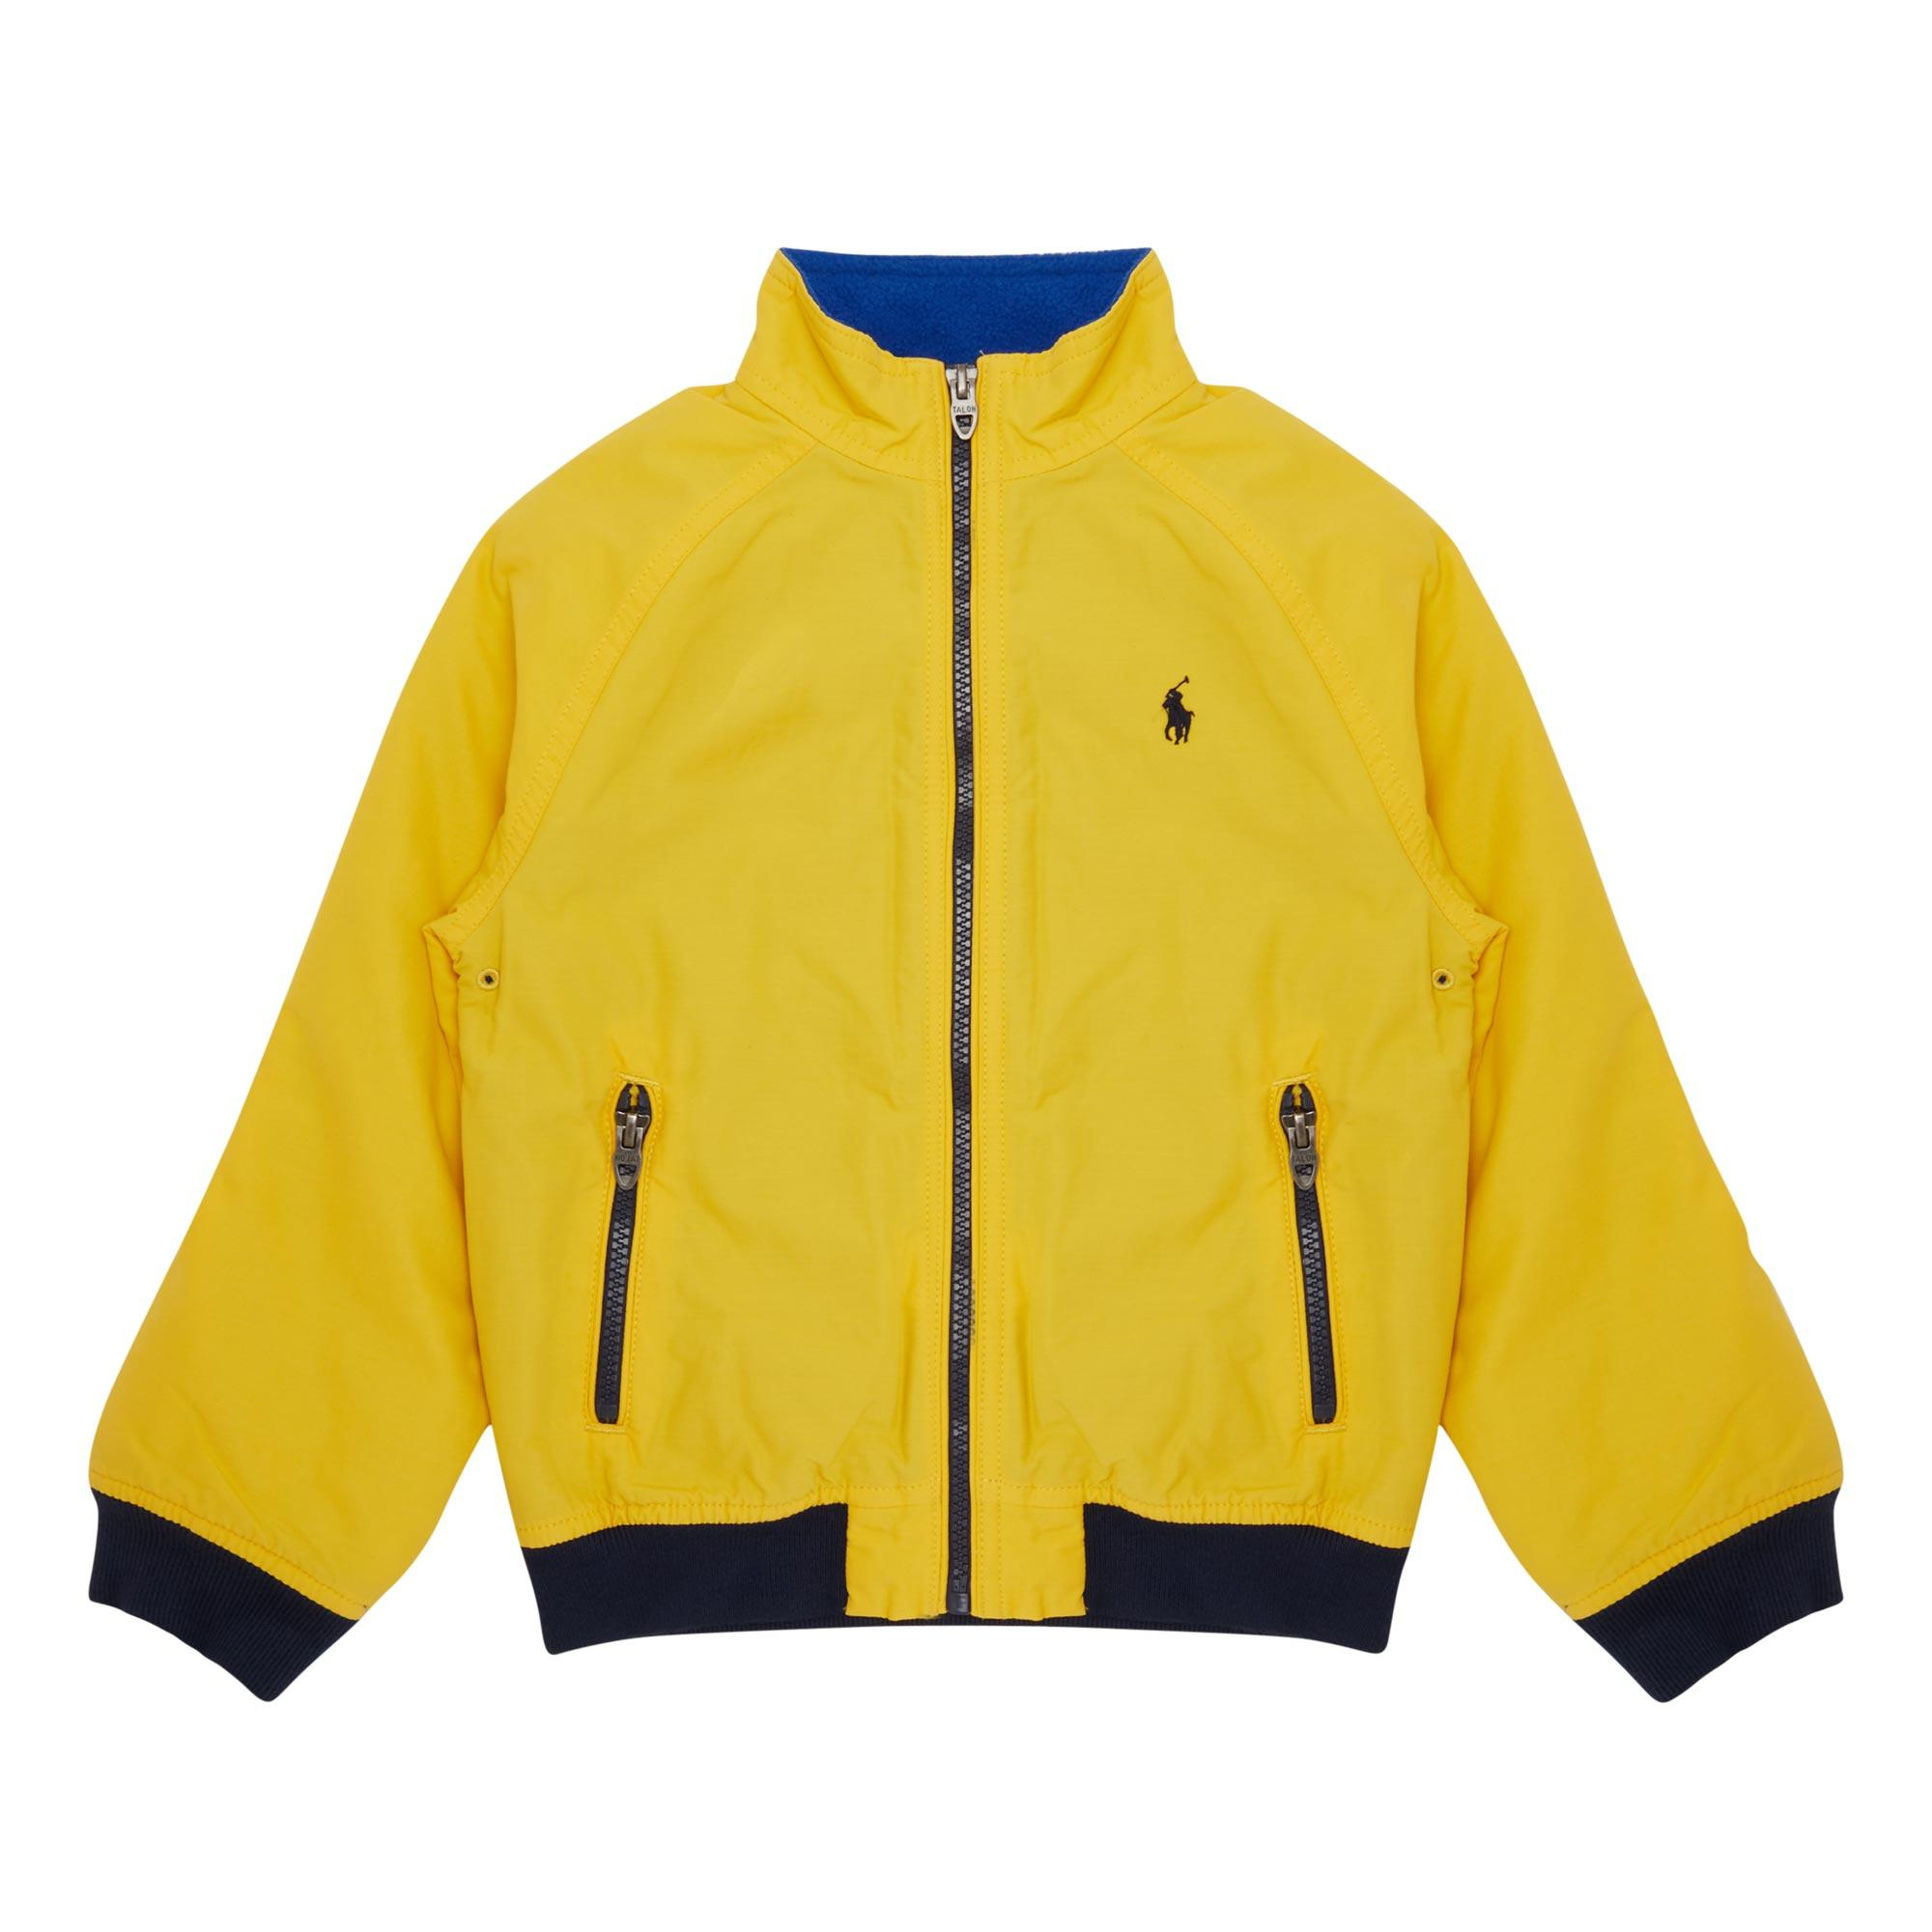 Outer Bomber Jacket